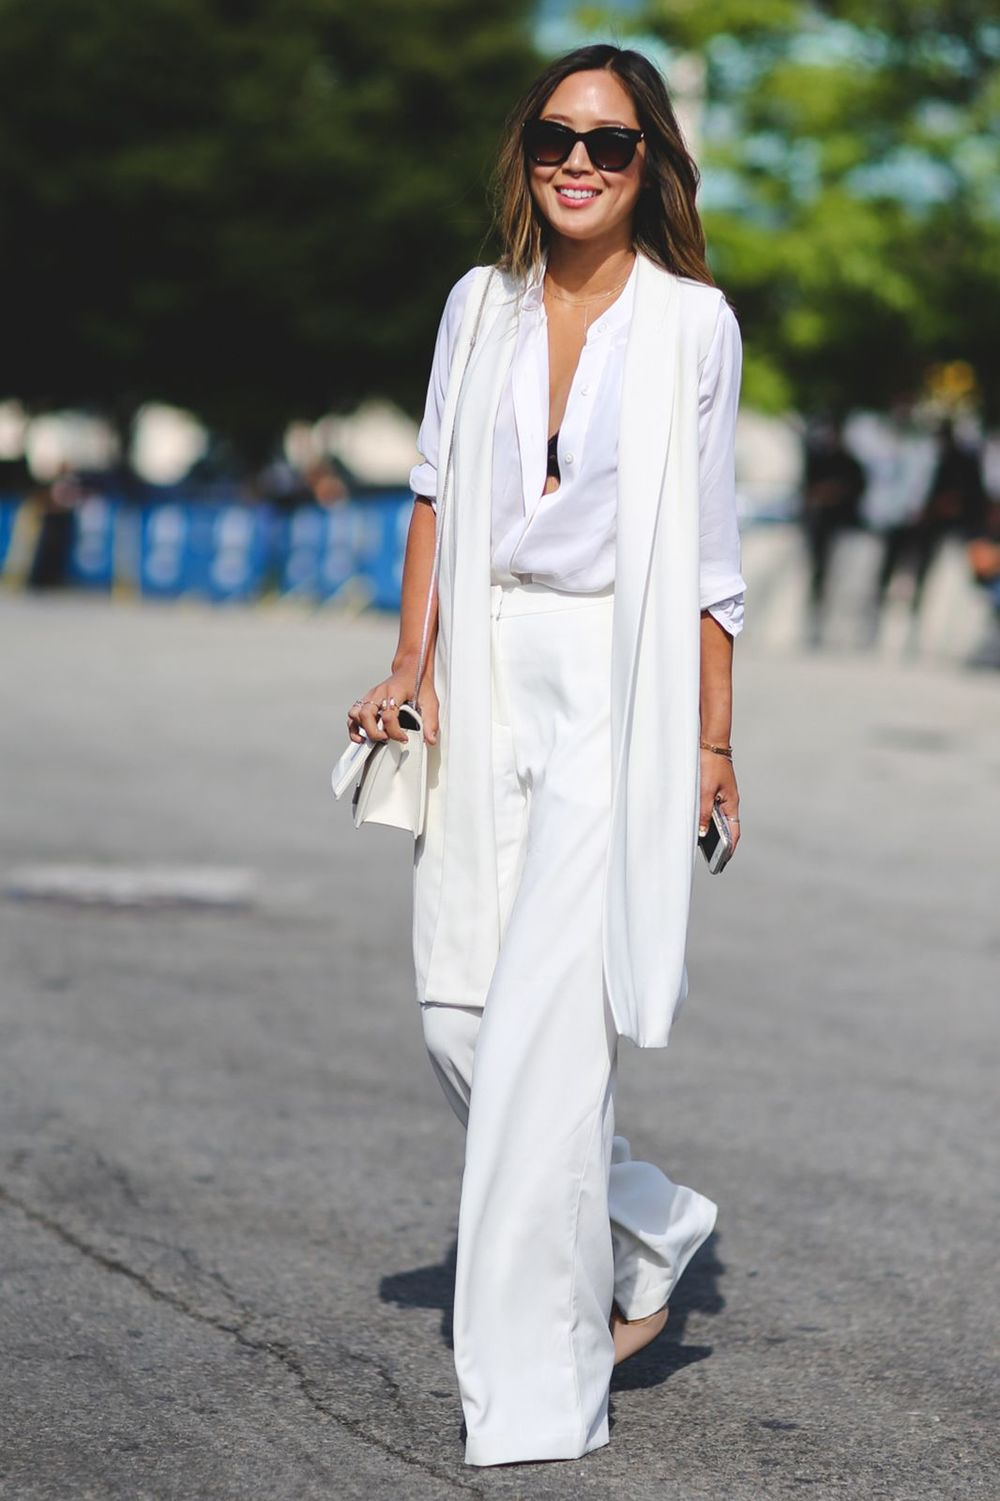 New York Fashion Week Street Style SS16 2015 2016 Discover and Escape 5.jpg